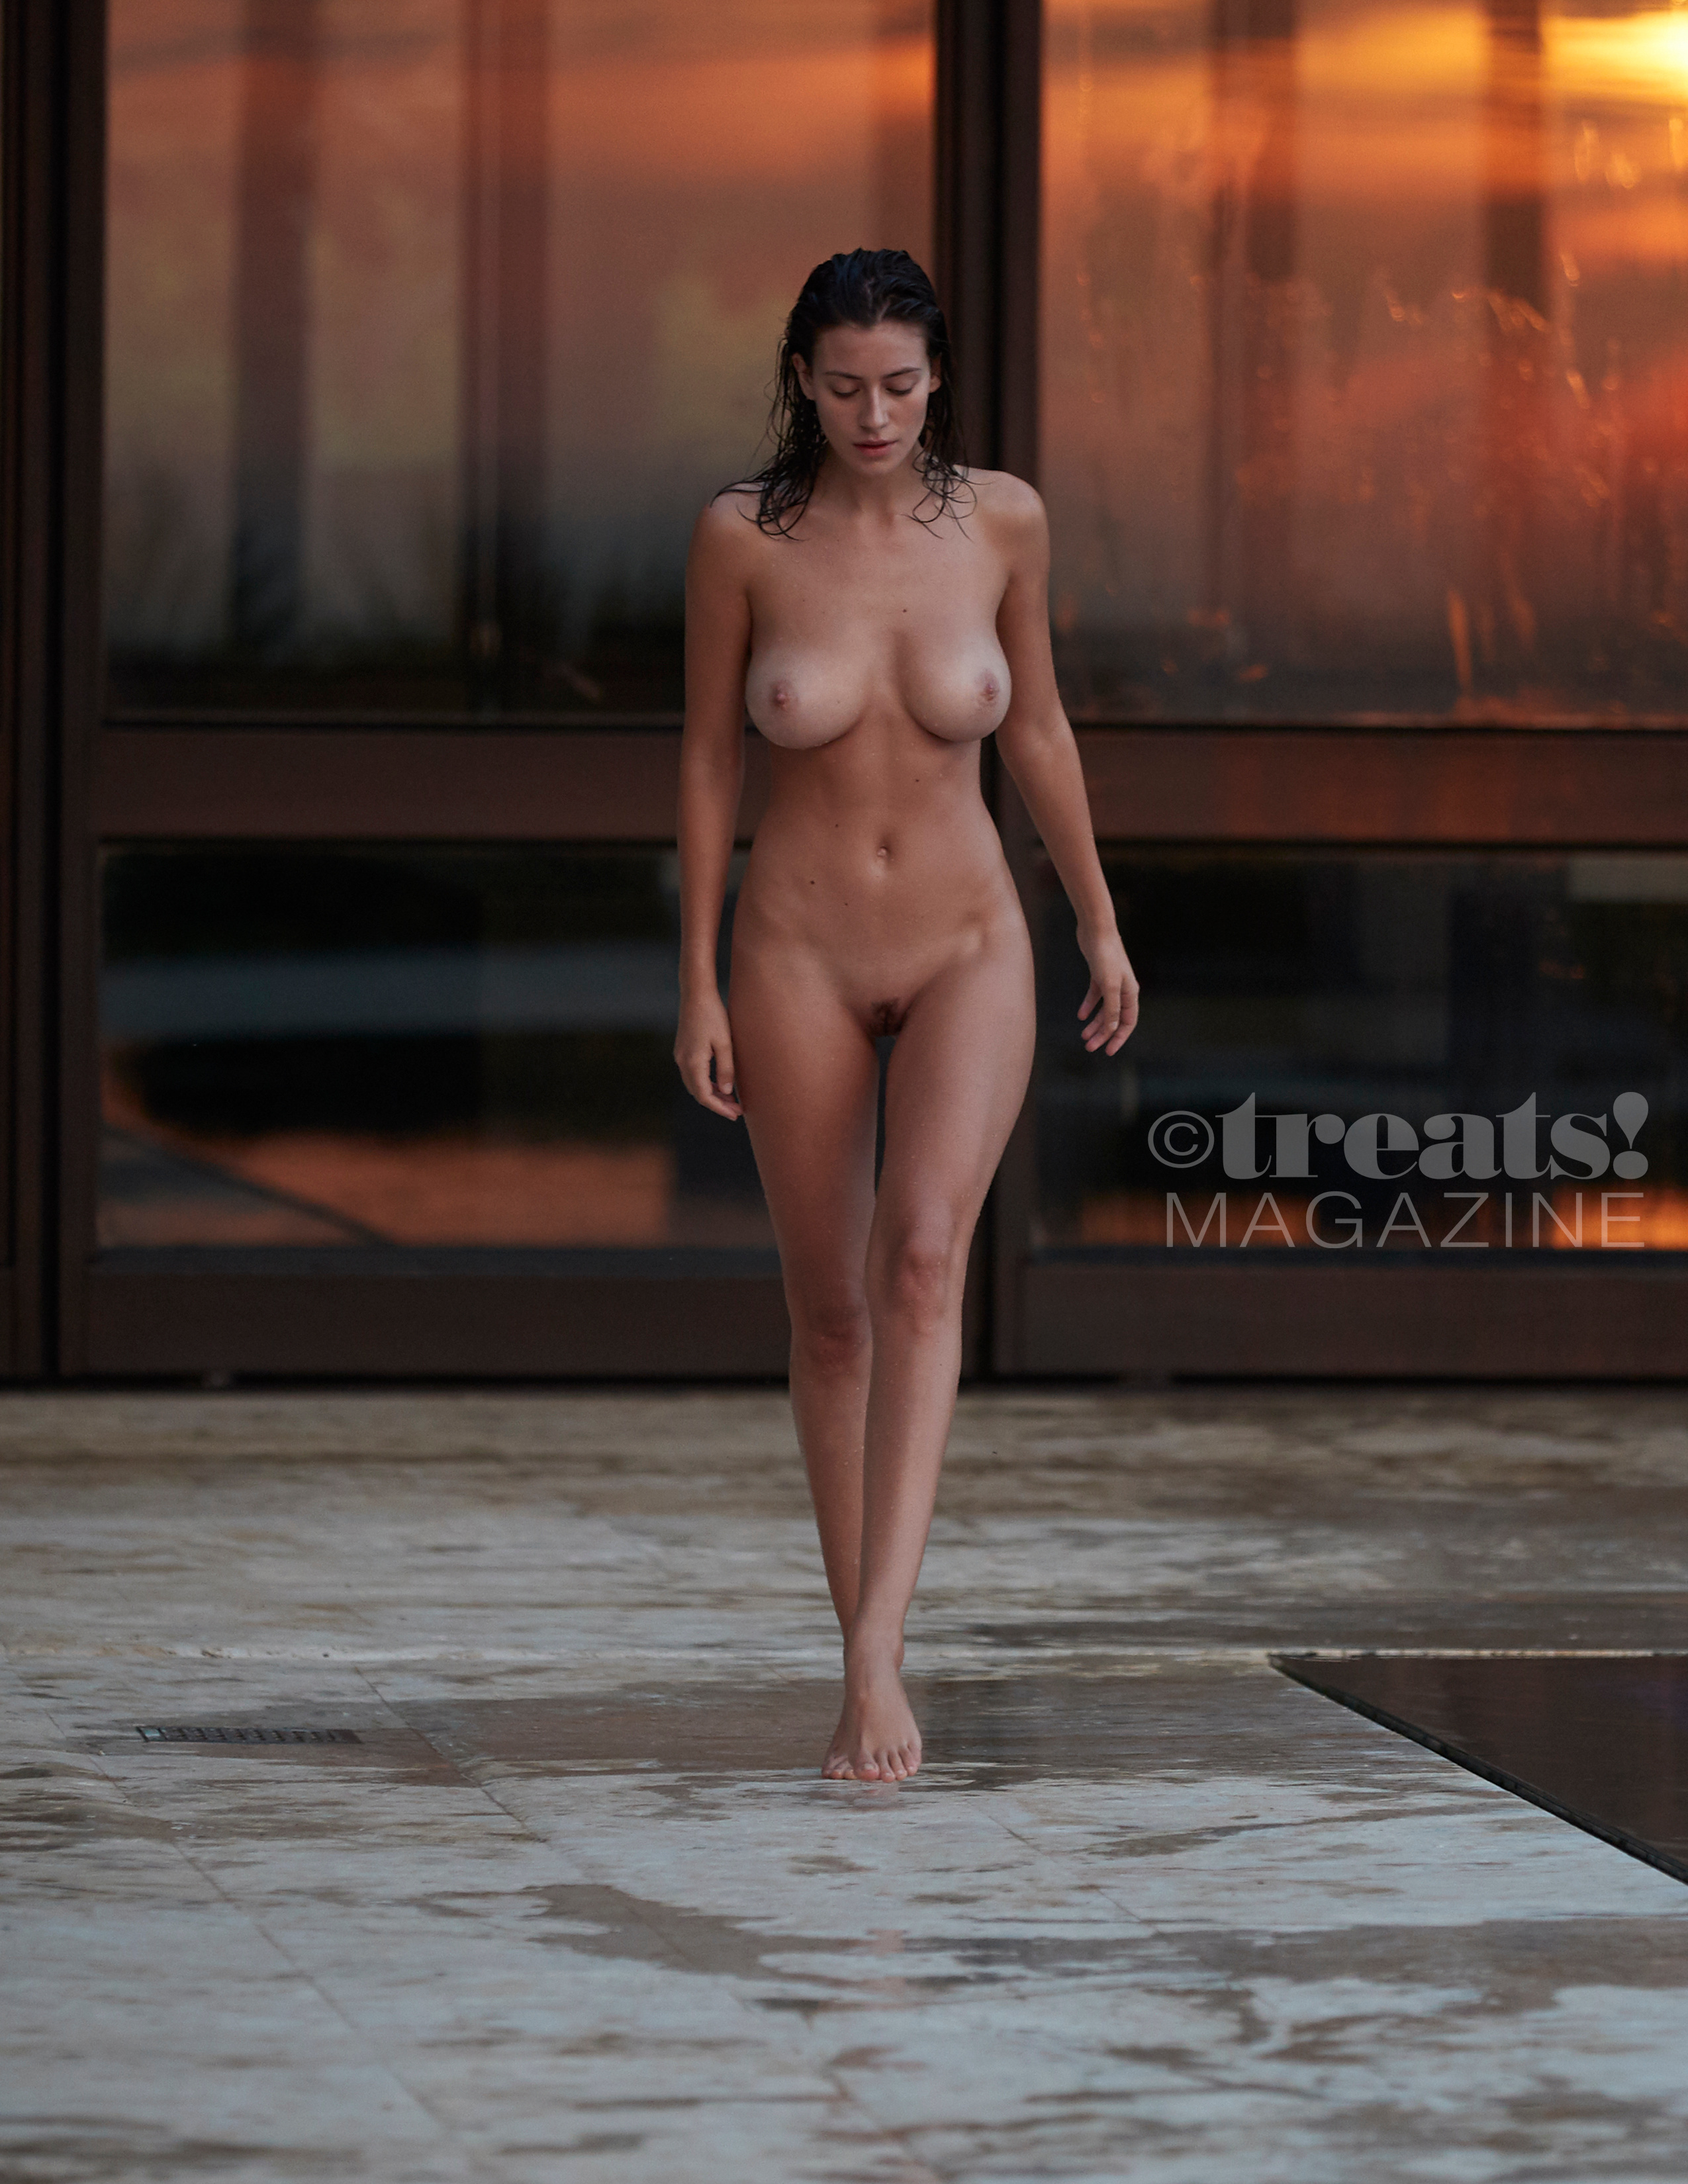 alejandra-guilmant-perfect-nude-body-erotic-treats-magazine-by-david-bellemere-37